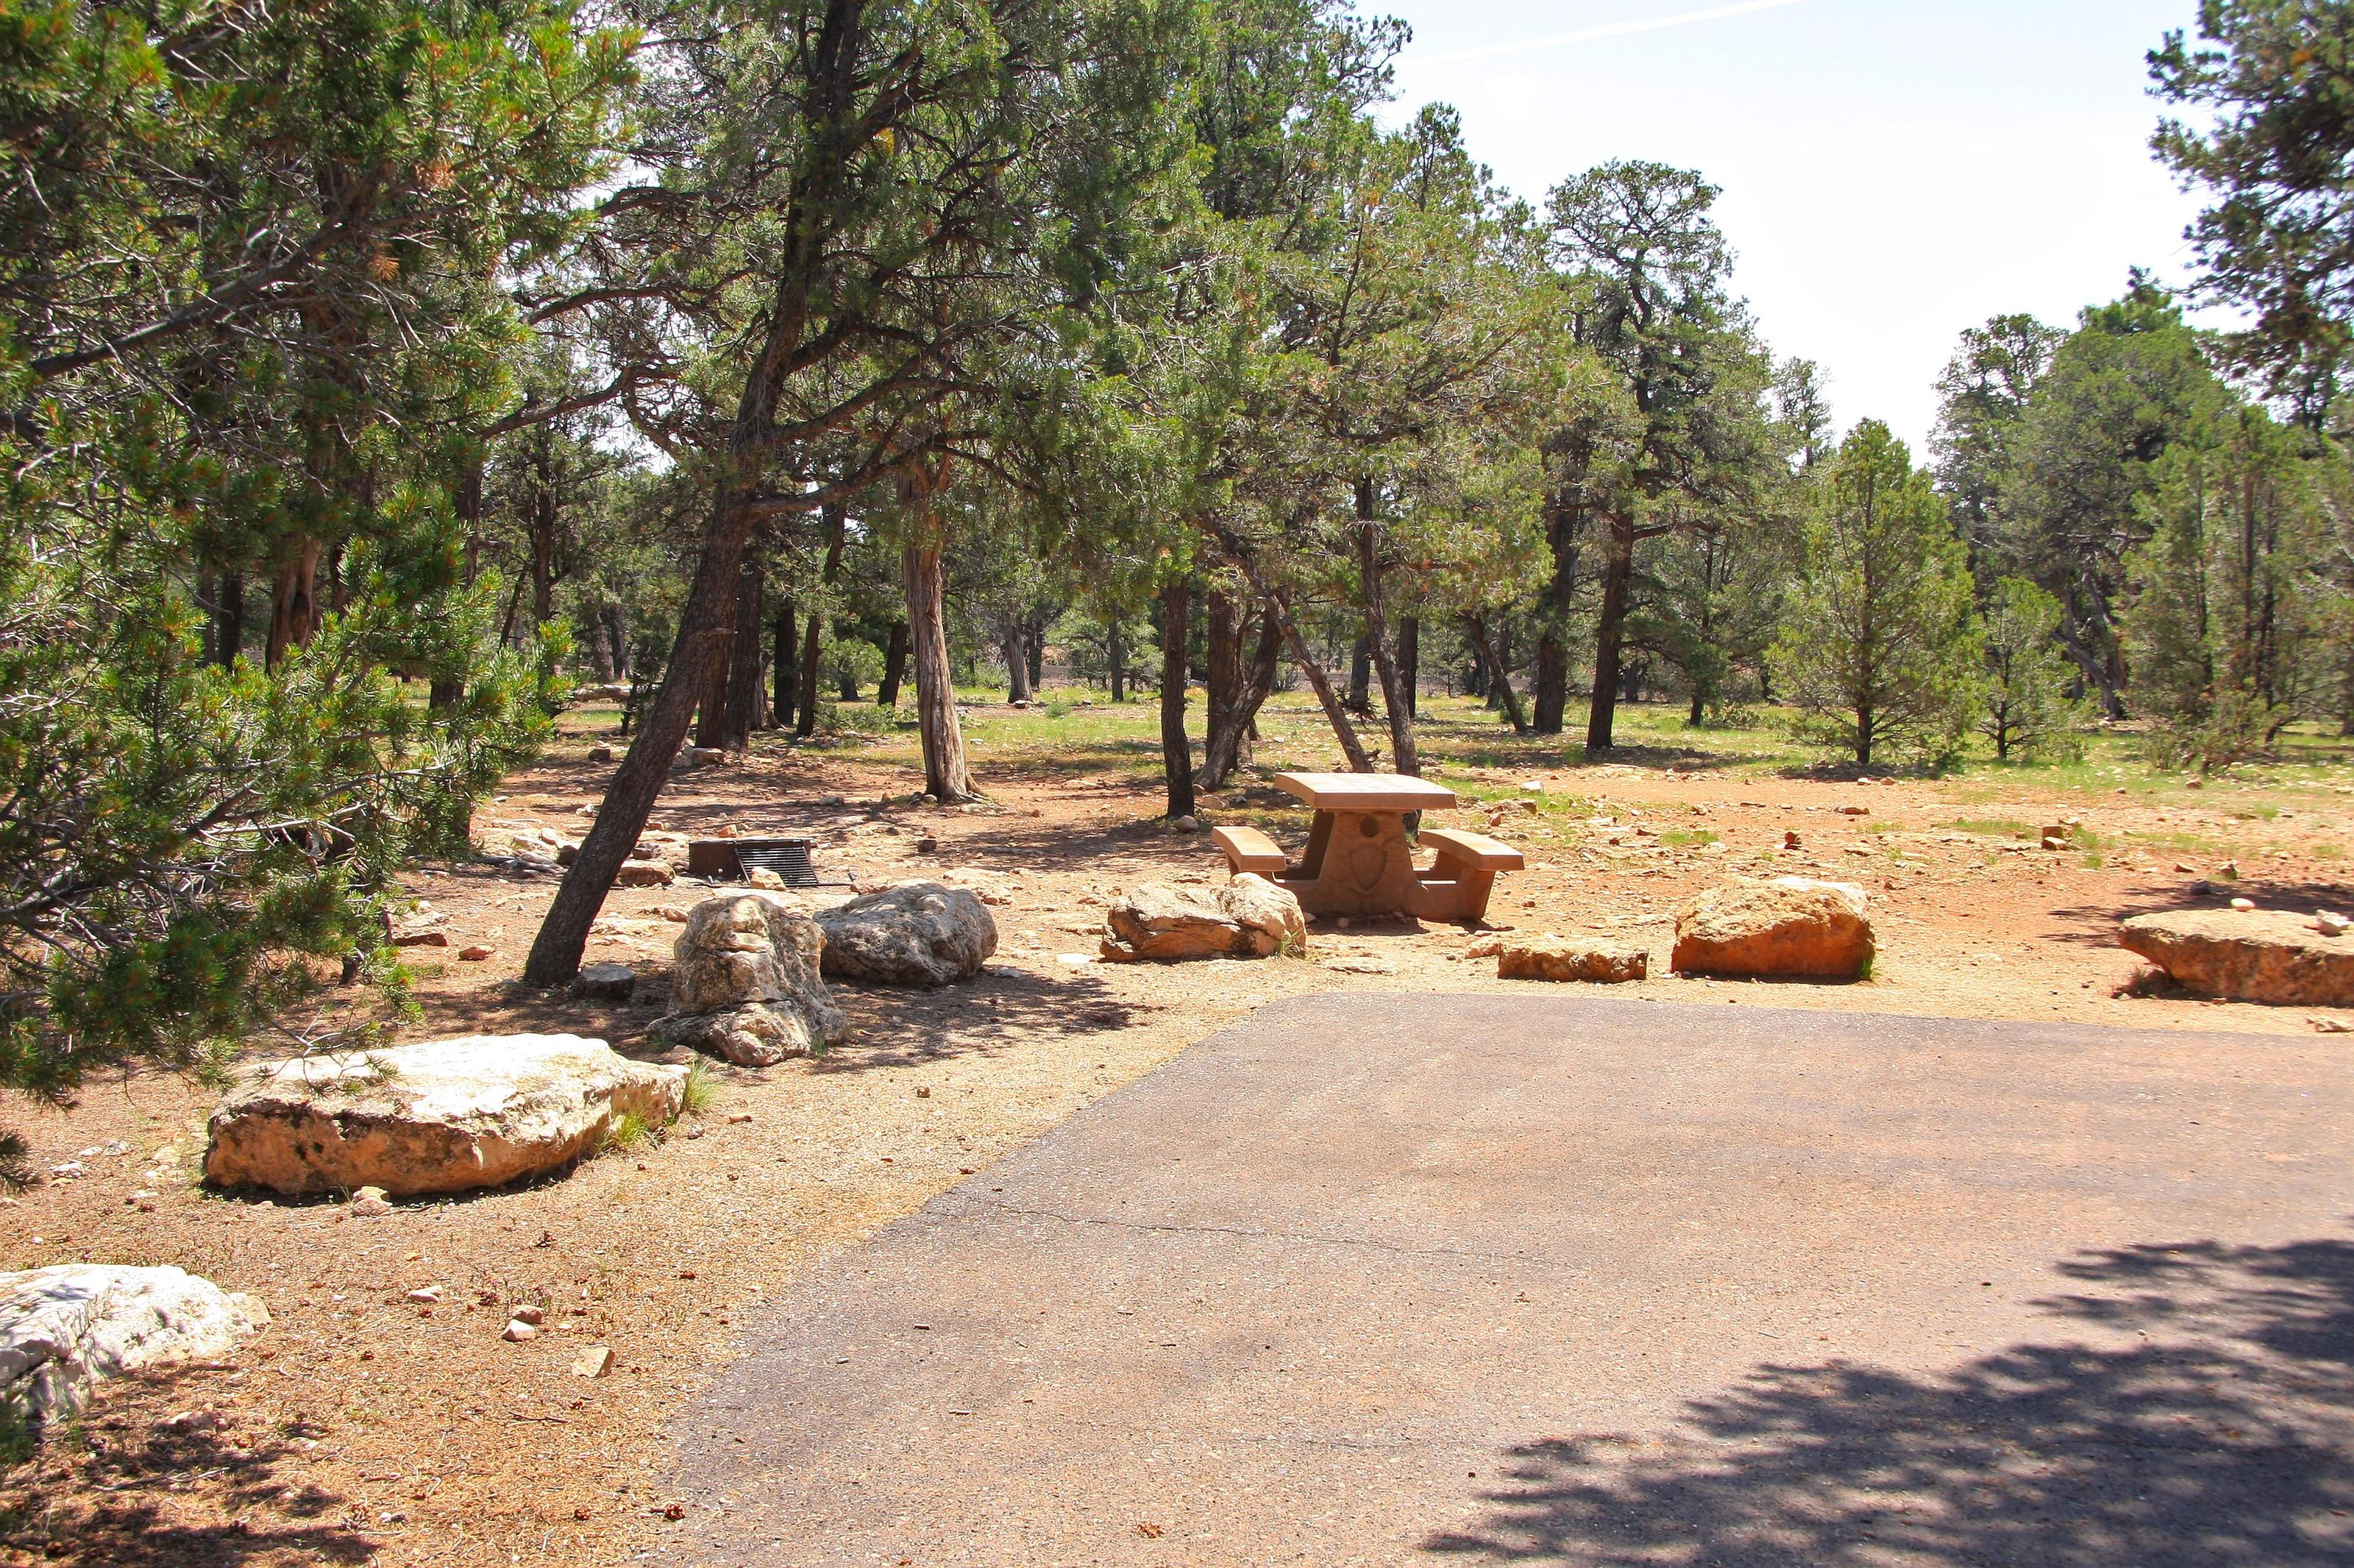 Picnic table, fire pit, and parking spot, Mather CampgroundPicnic table, fire pit, and parking spot for Juniper Loop 171, Mather Campground